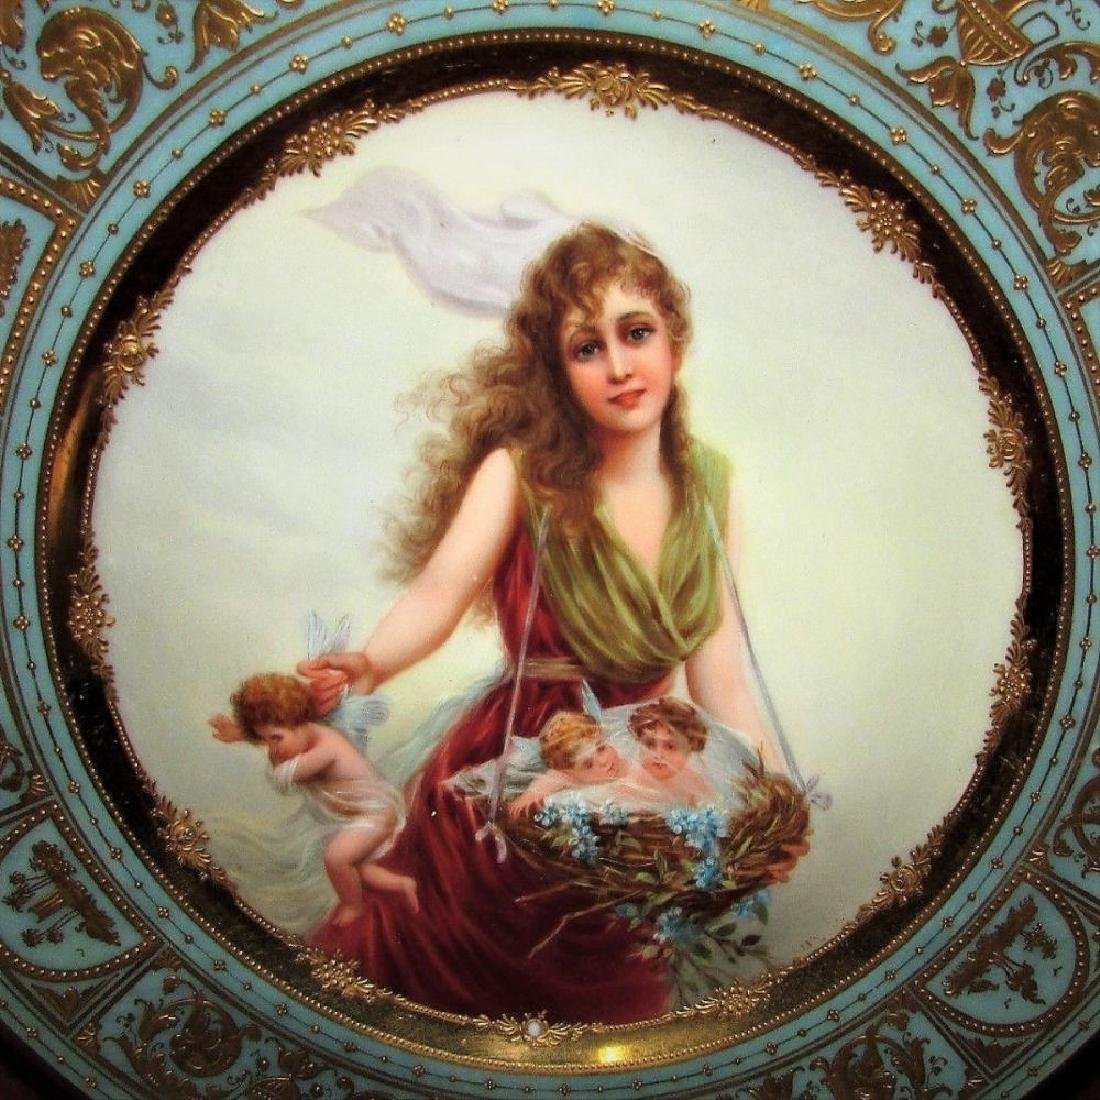 Antique Royal Porcelain Cabinet Plate Vienna Portrait - 3